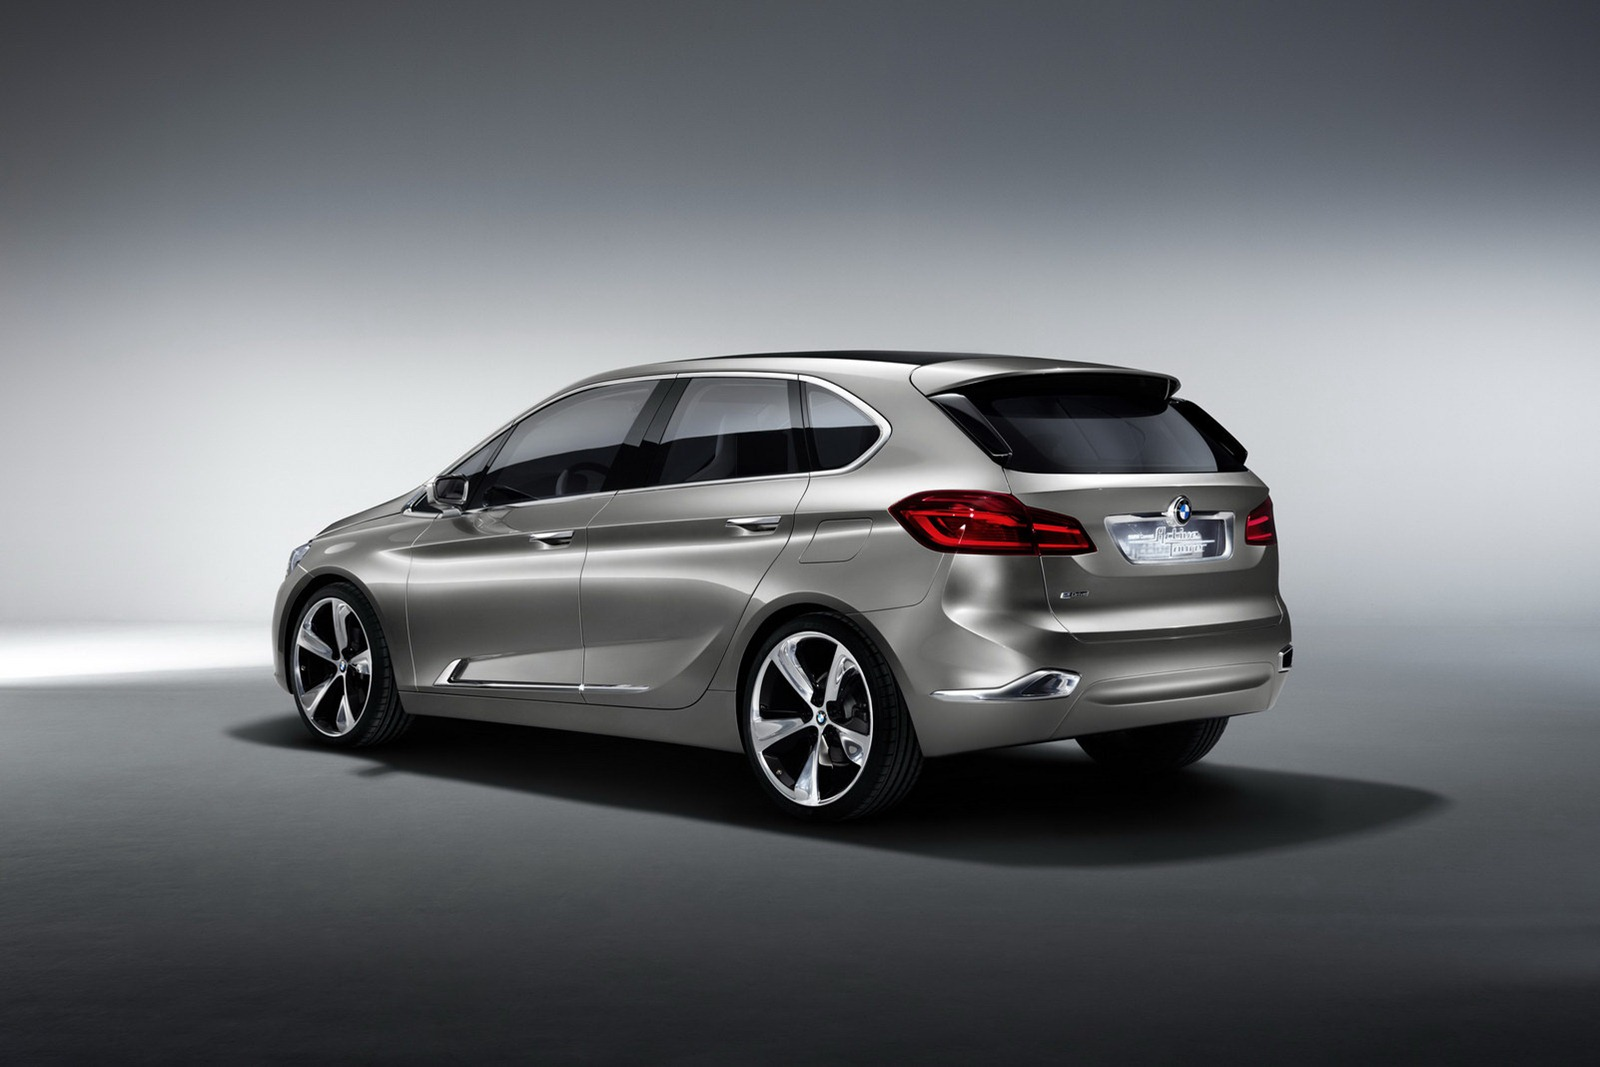 2012 bmw active tourer concept revealed previews 1er gt autoevolution. Black Bedroom Furniture Sets. Home Design Ideas